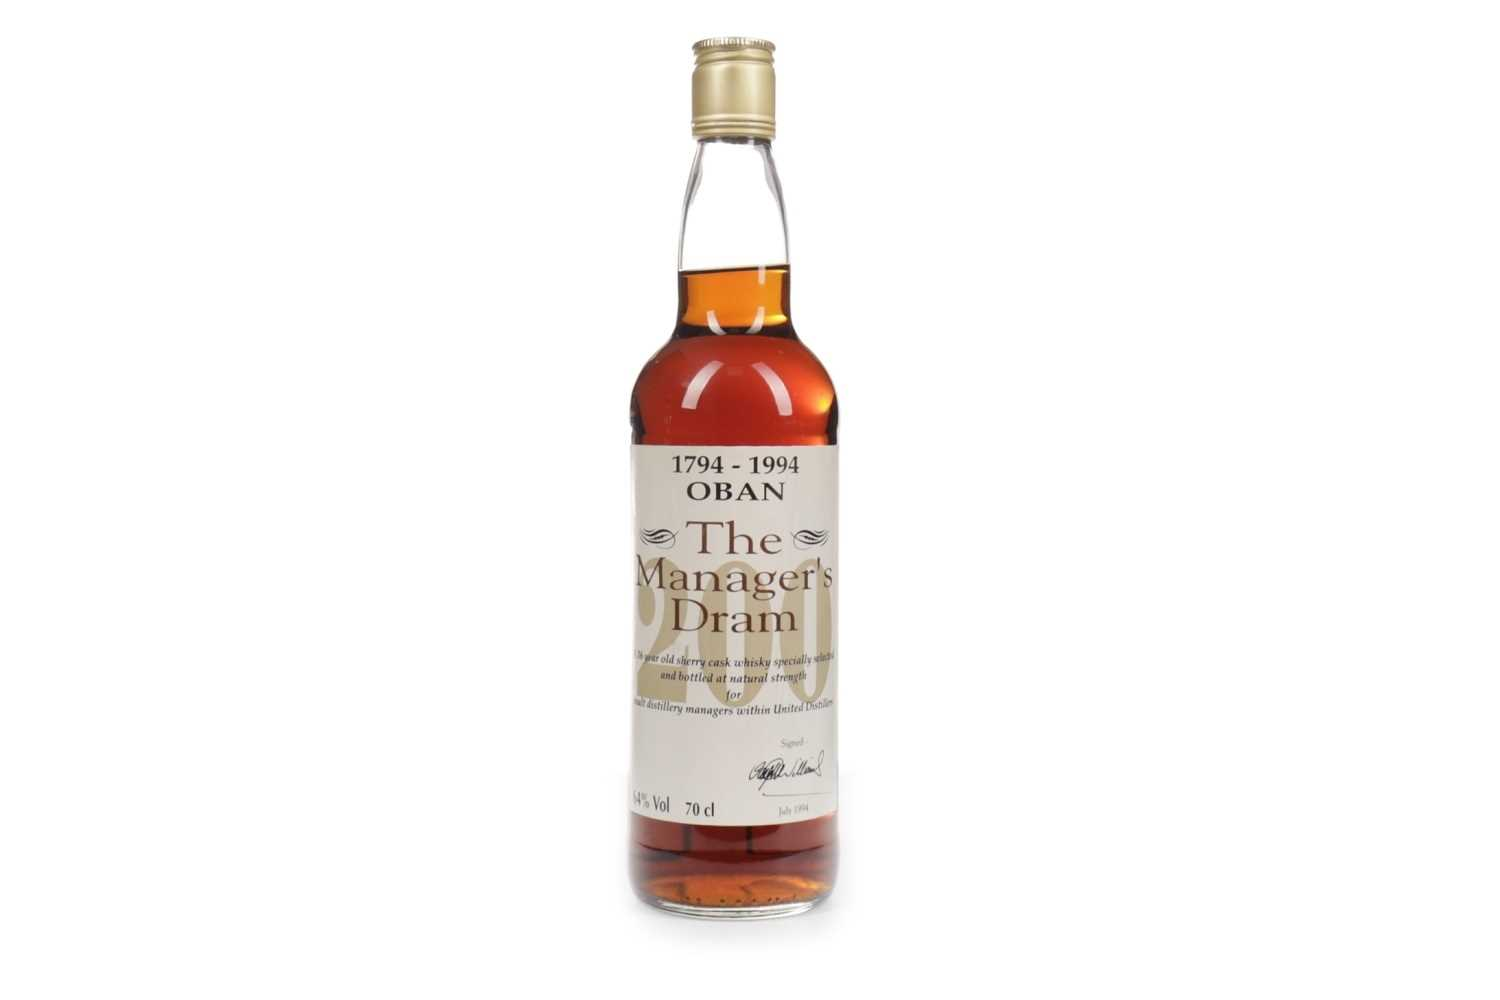 Lot 88-OBAN THE MANAGER'S DRAM 200th ANNIVERSARY AGED 16 YEARS